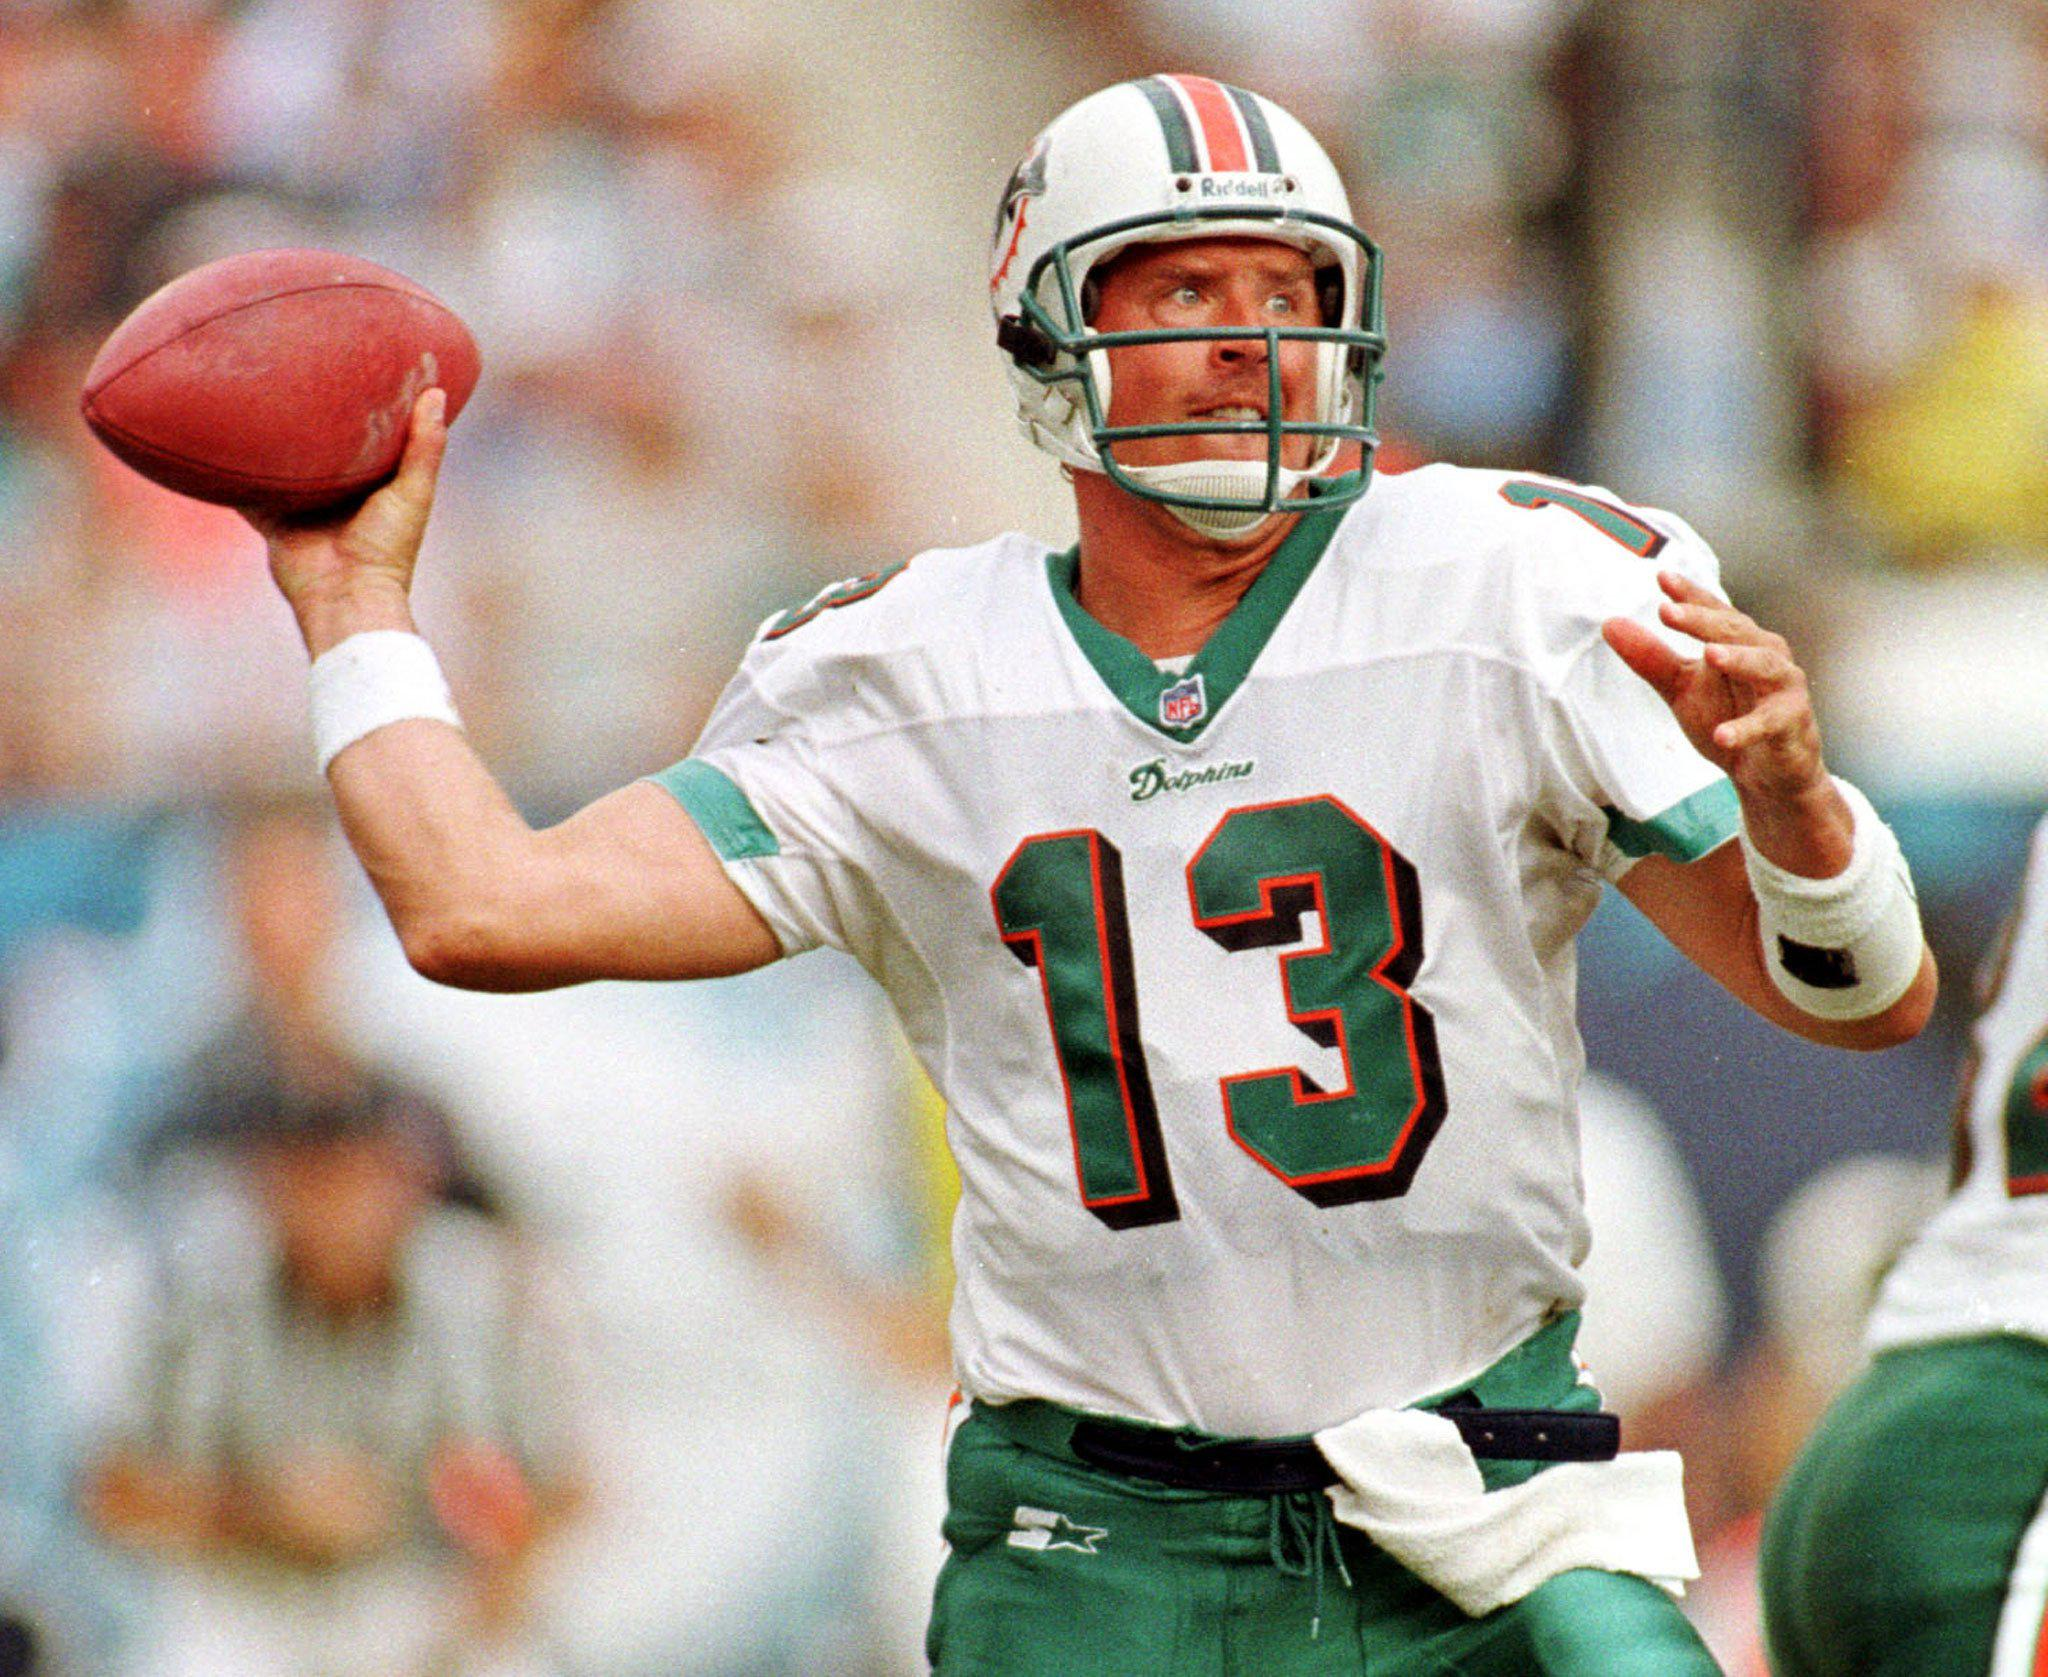 Dan Marino never won the Super Bowl but elevated his Miami team into play-off contention almost every year